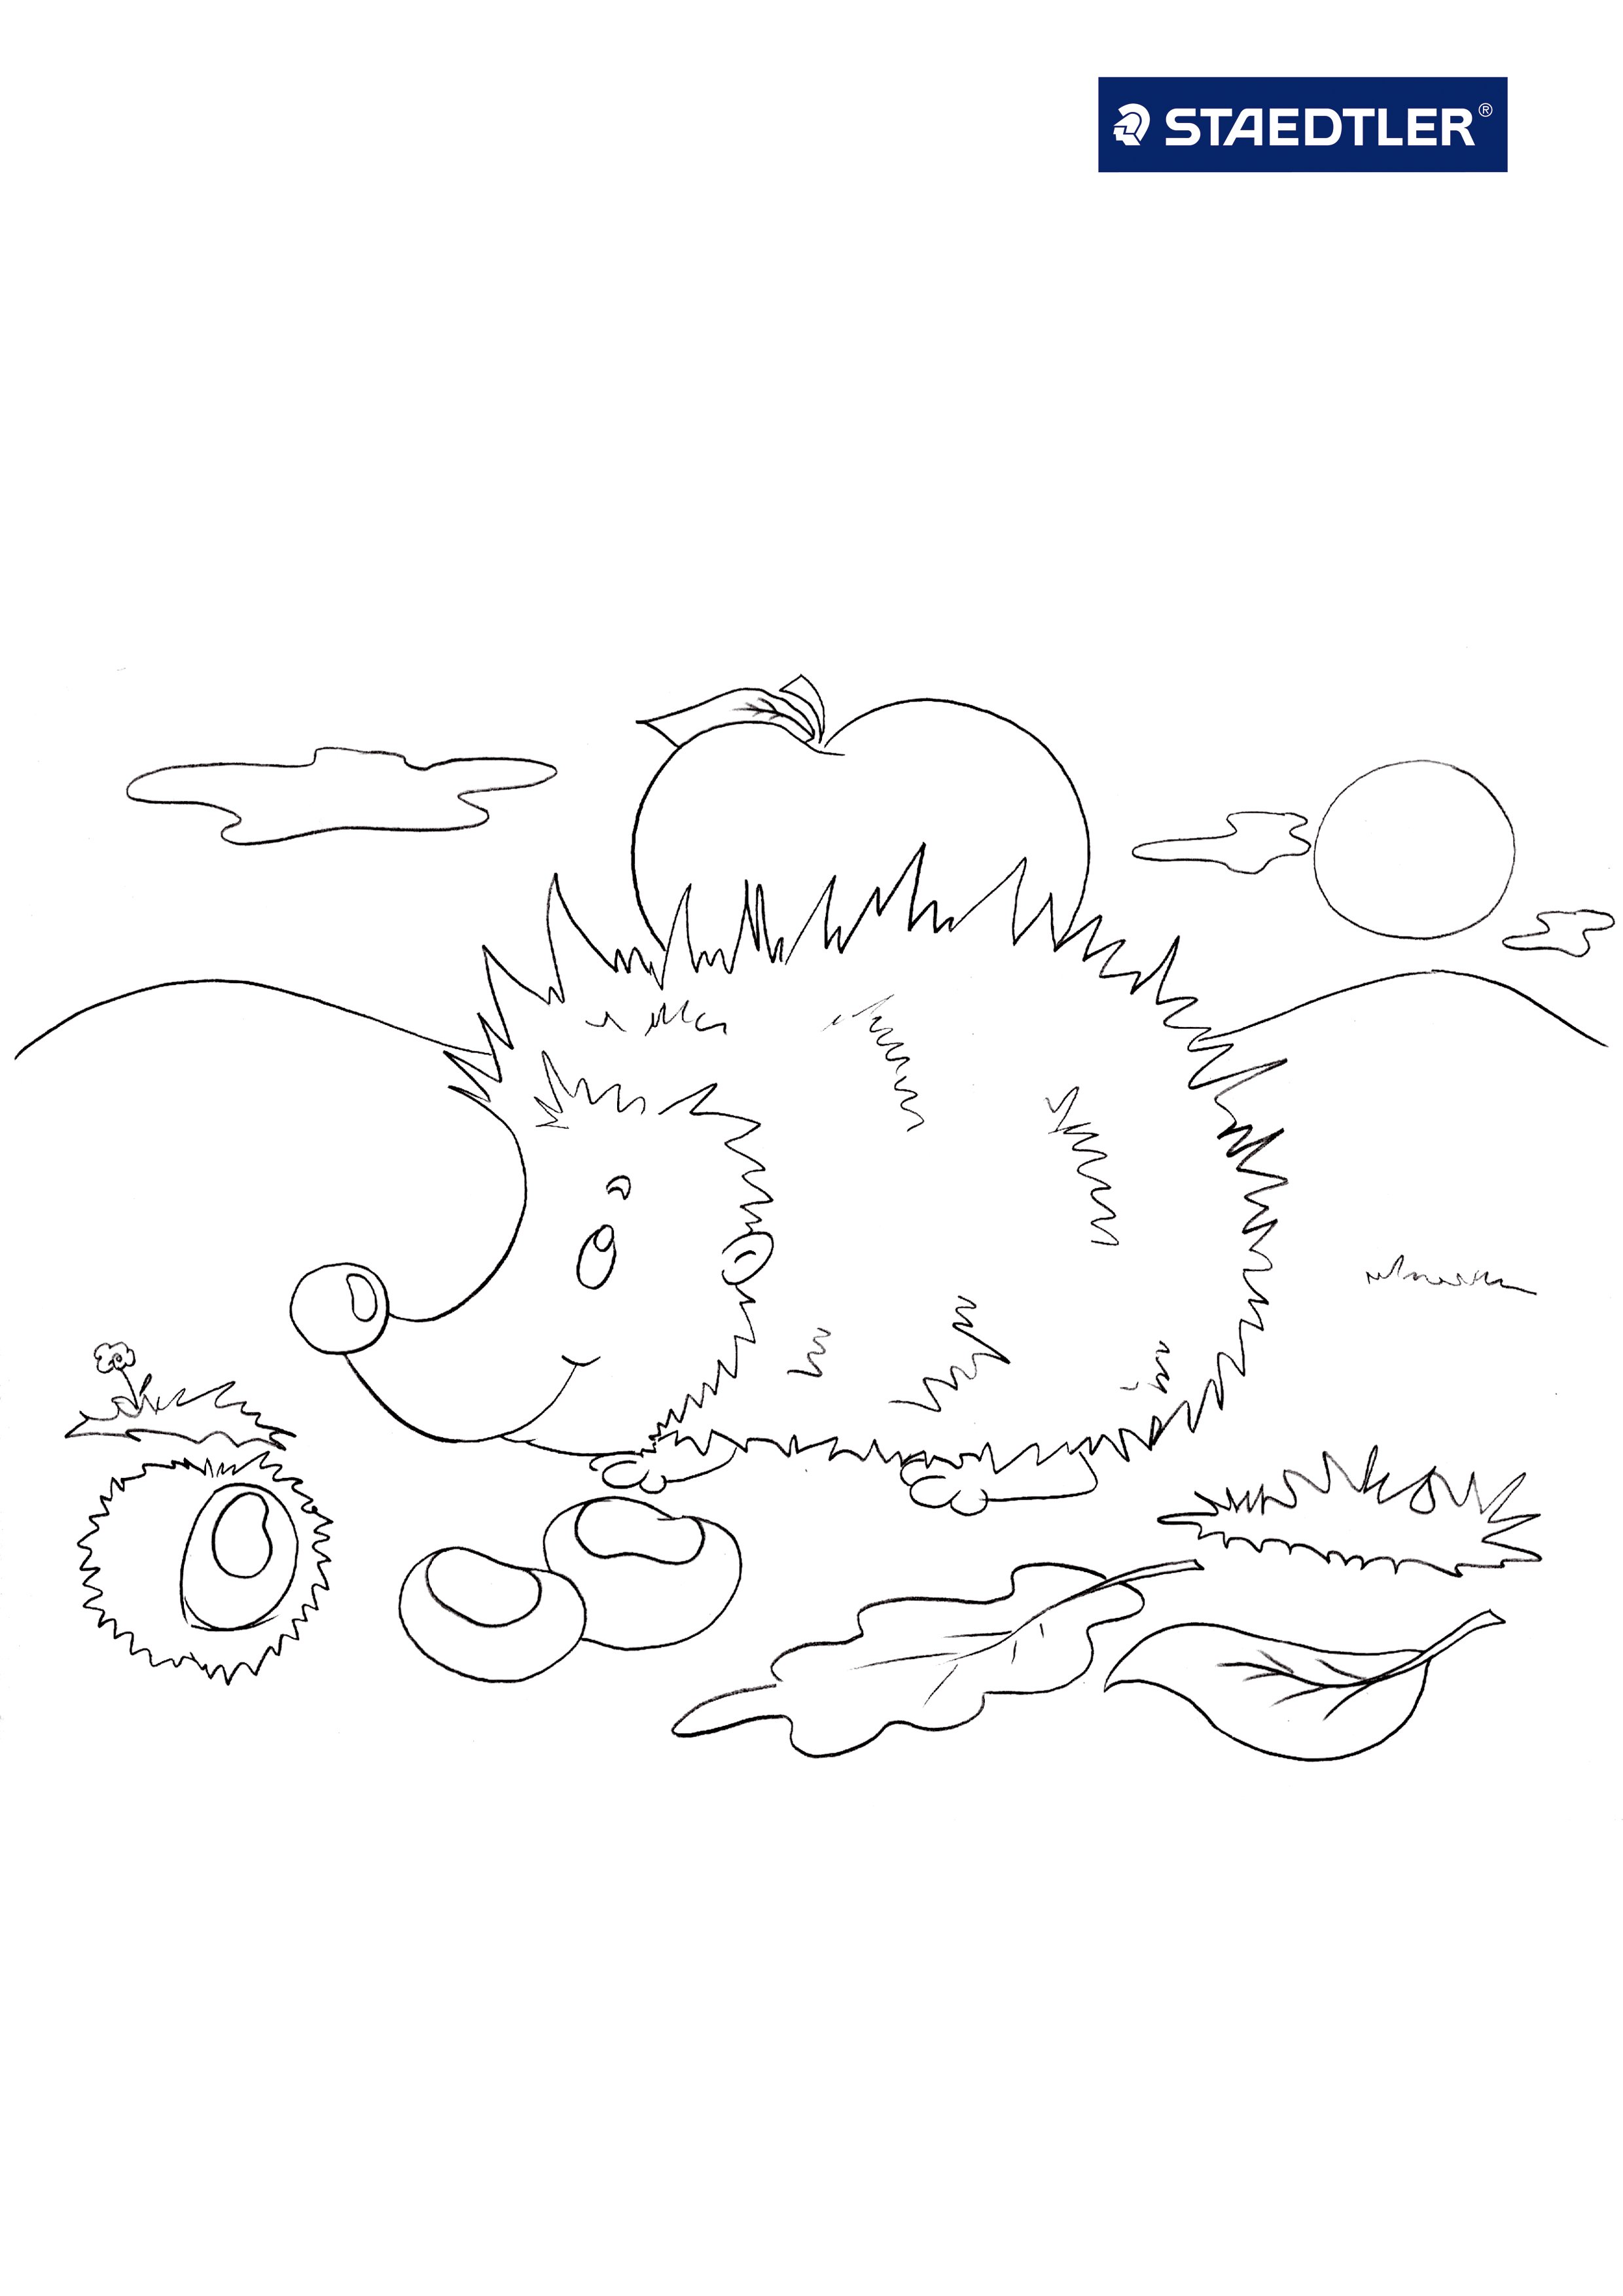 Hedgehog Coloring Pages To Download And Print For Free